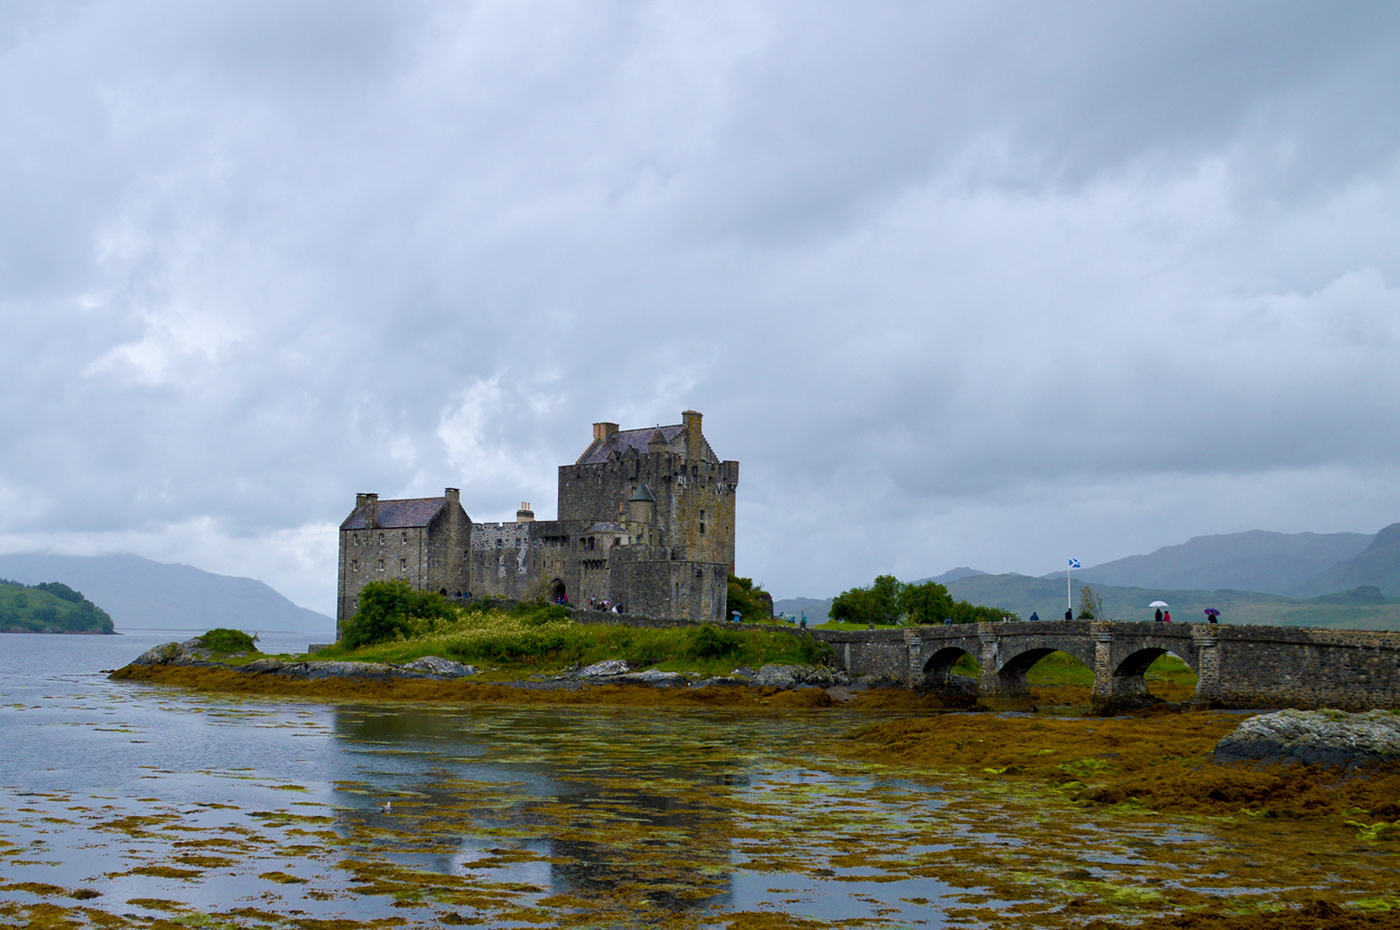 There can be only one Eilean Donan Castle...